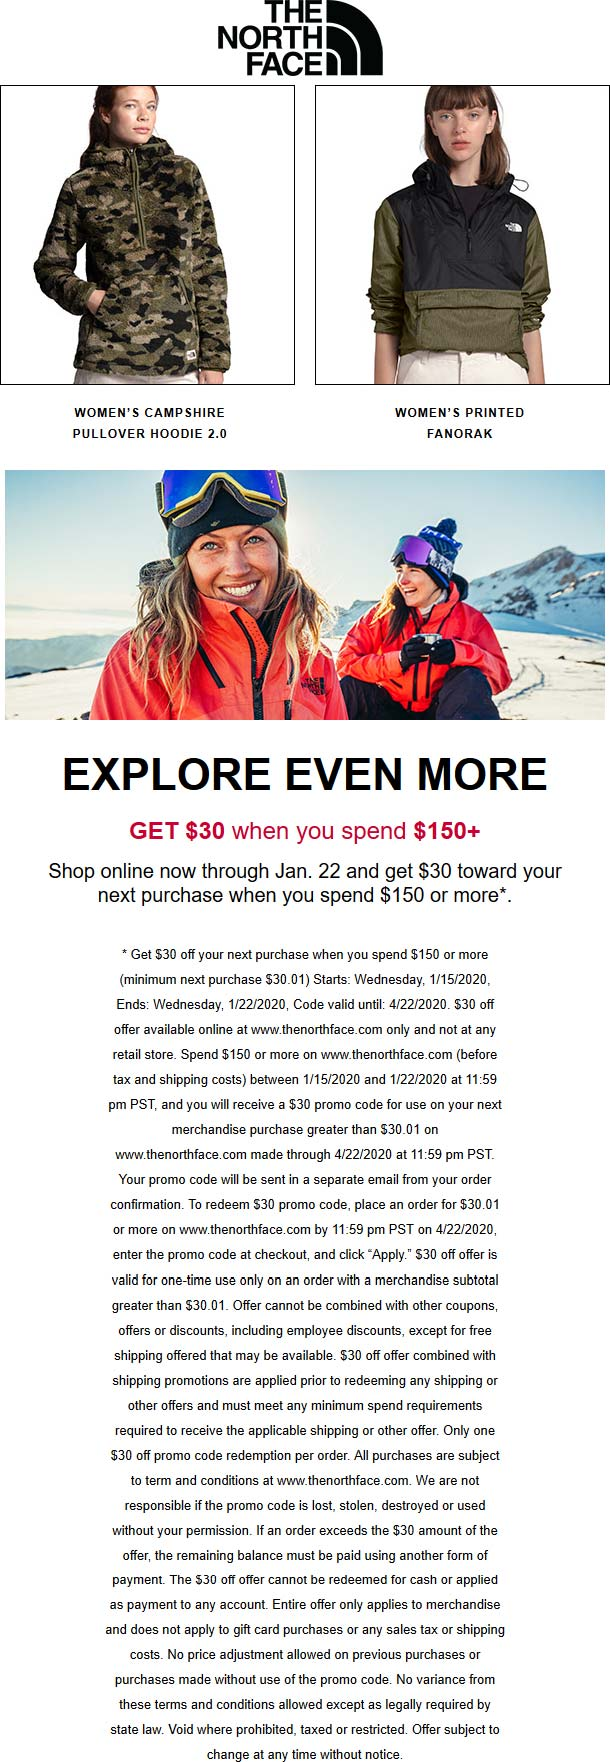 The North Face coupons & promo code for [April 2021]